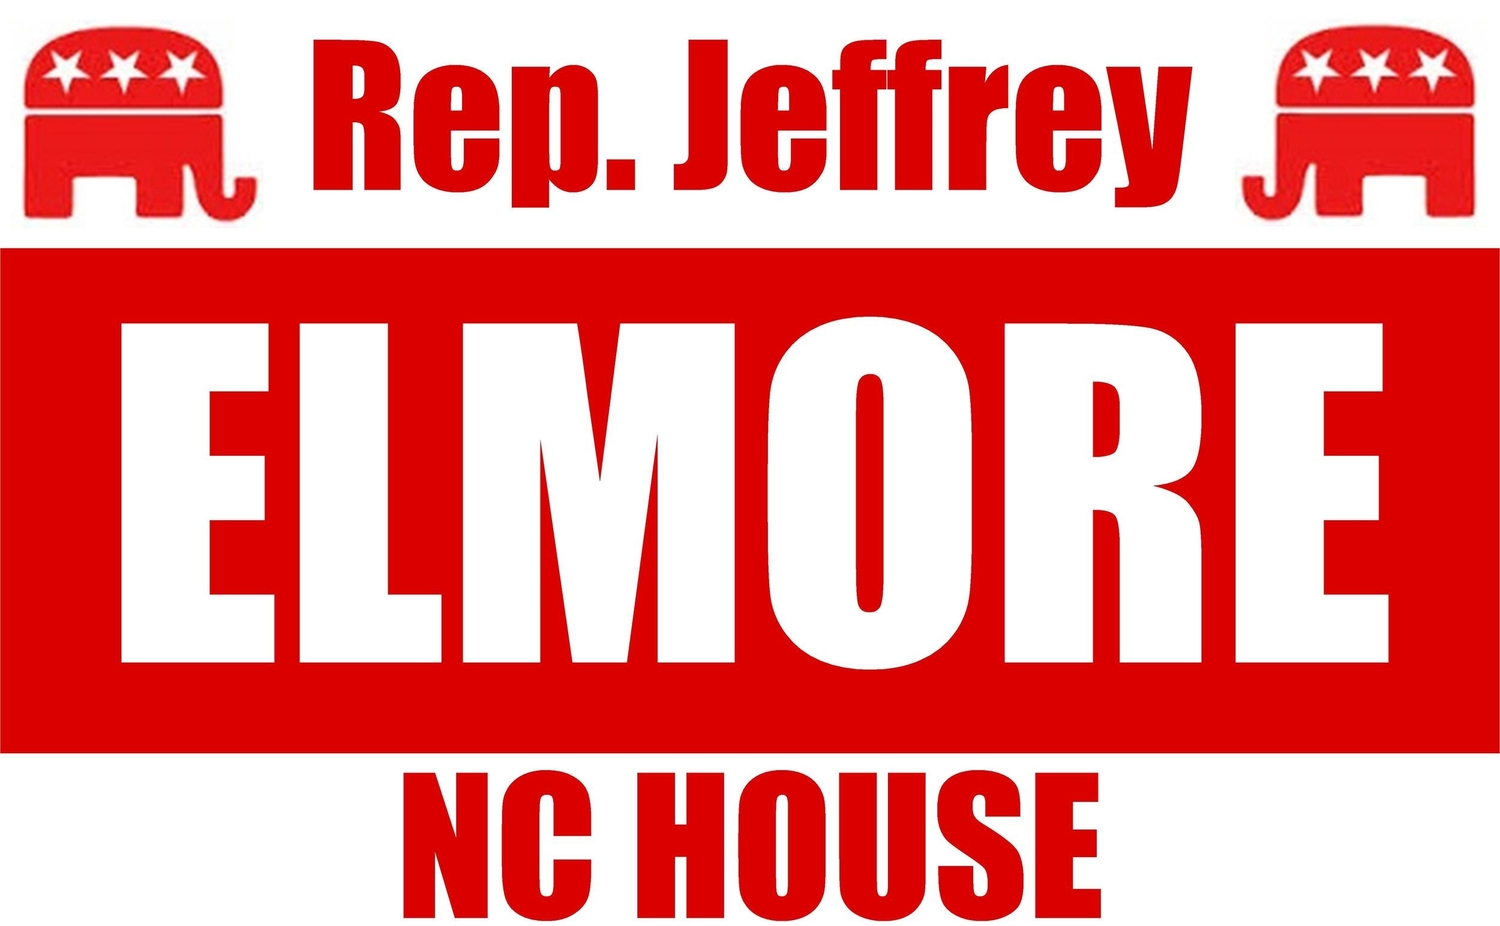 NC House Representative Jeffrey Elmore